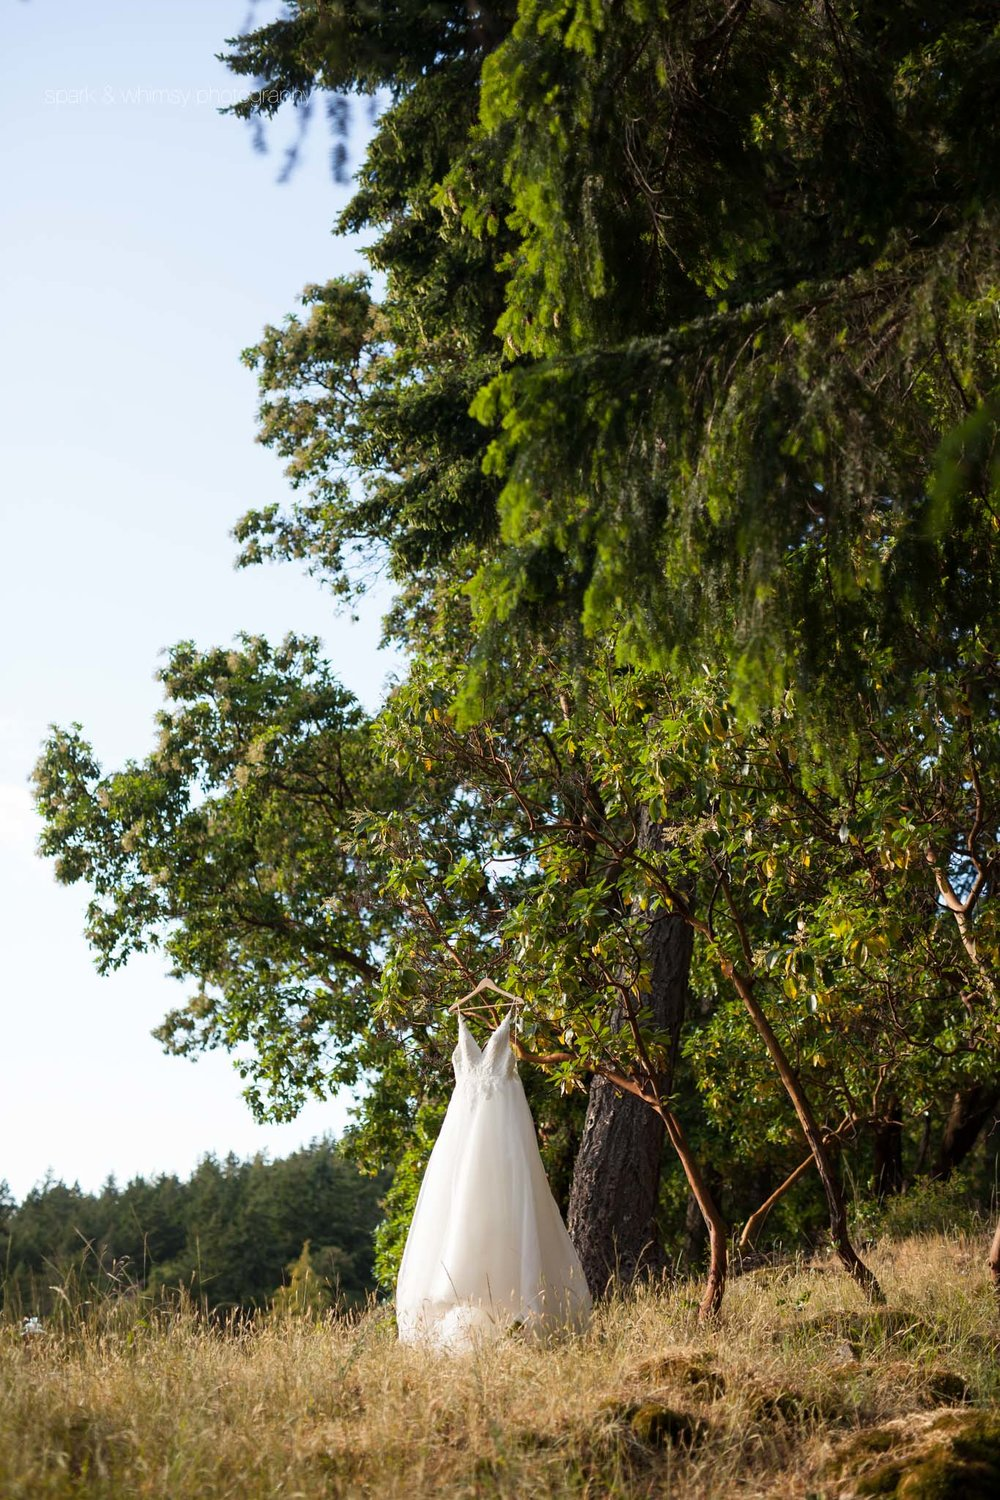 lis simon wedding dress from tres chic bridal boutique | victoria bc wedding photographer